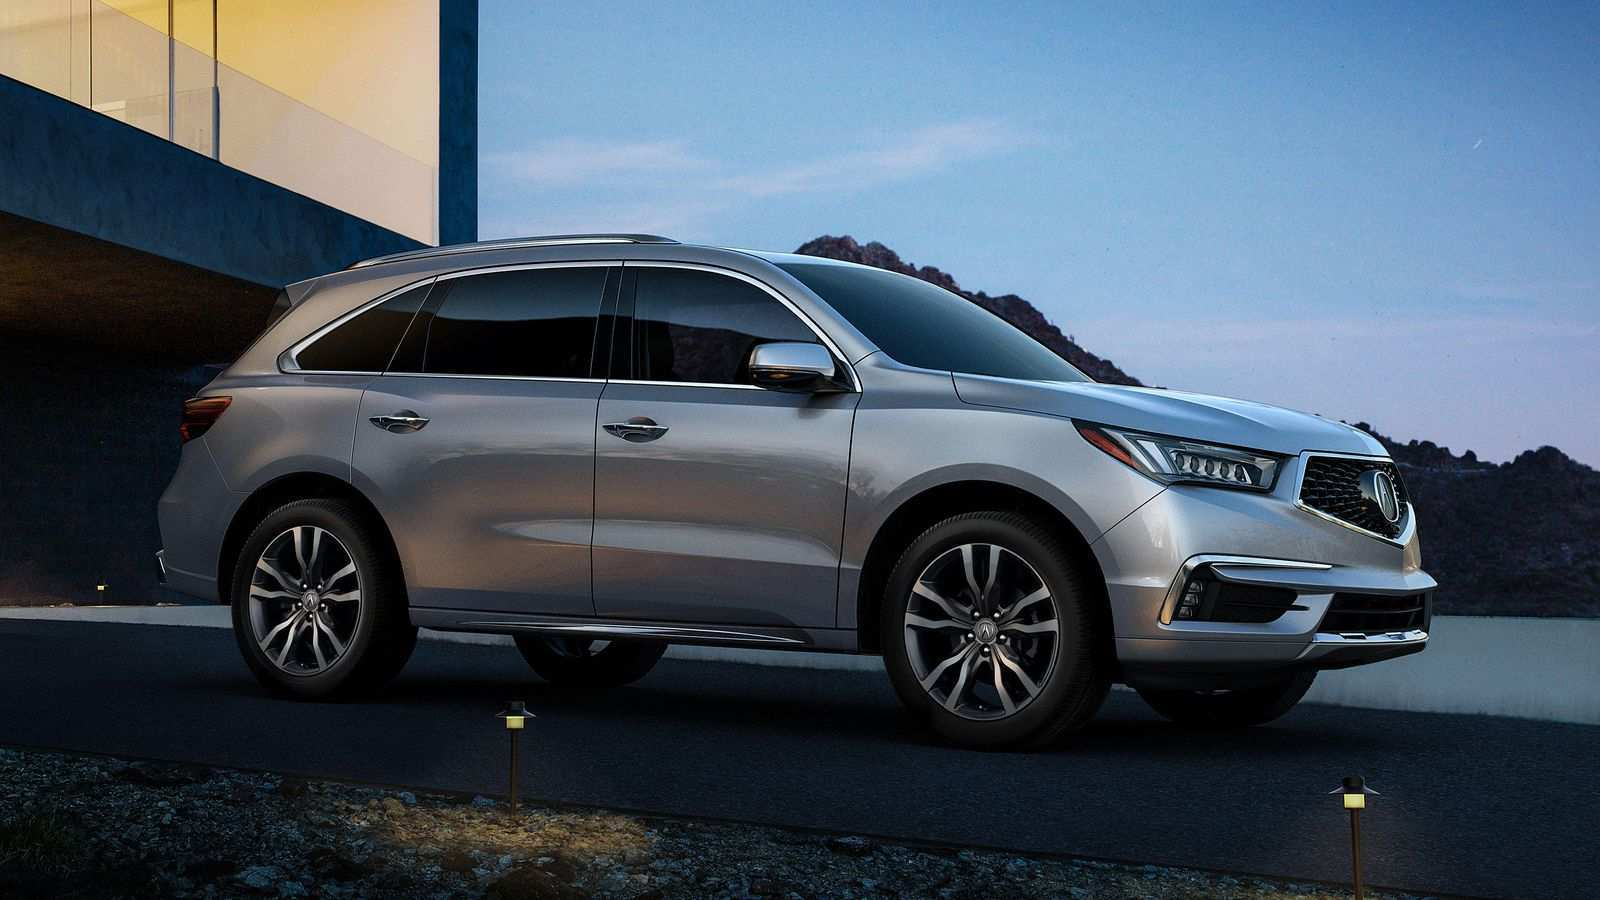 16 Best Review 2020 Acura Mdx Rumors Style for 2020 Acura Mdx Rumors